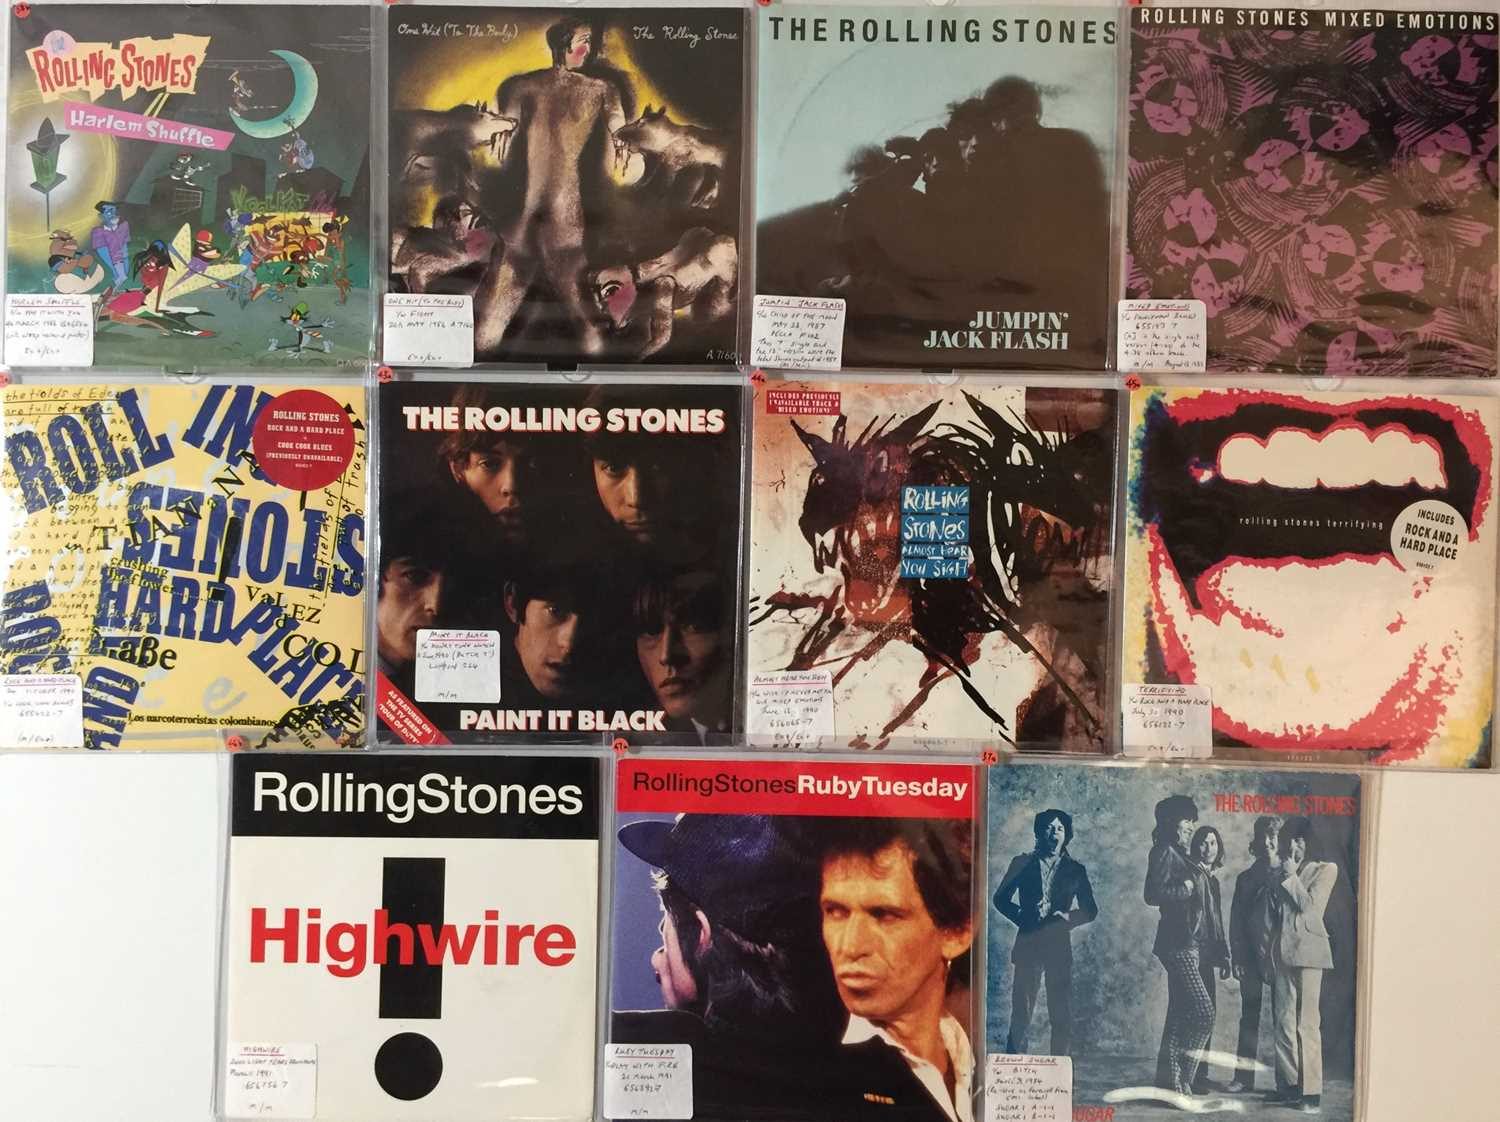 """THE ROLLING STONES - 7"""" COLLECTION (70s/2000s) - Image 4 of 4"""